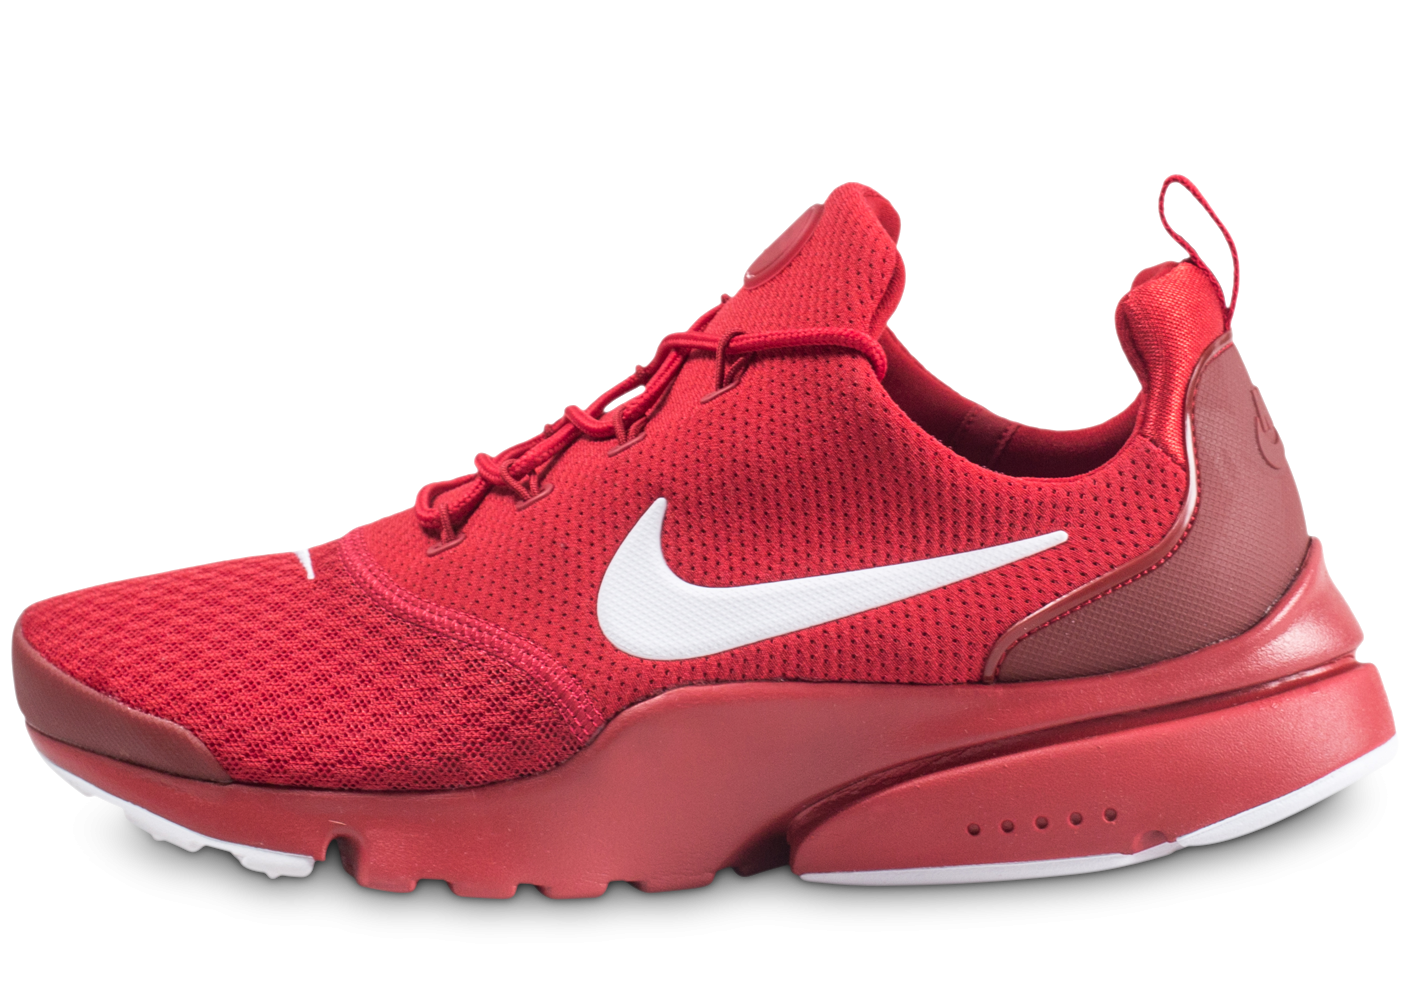 info for d6f86 4b71e Nike Air Presto Fly Ultra SE rouge - Chaussures Baskets homme - Chausport